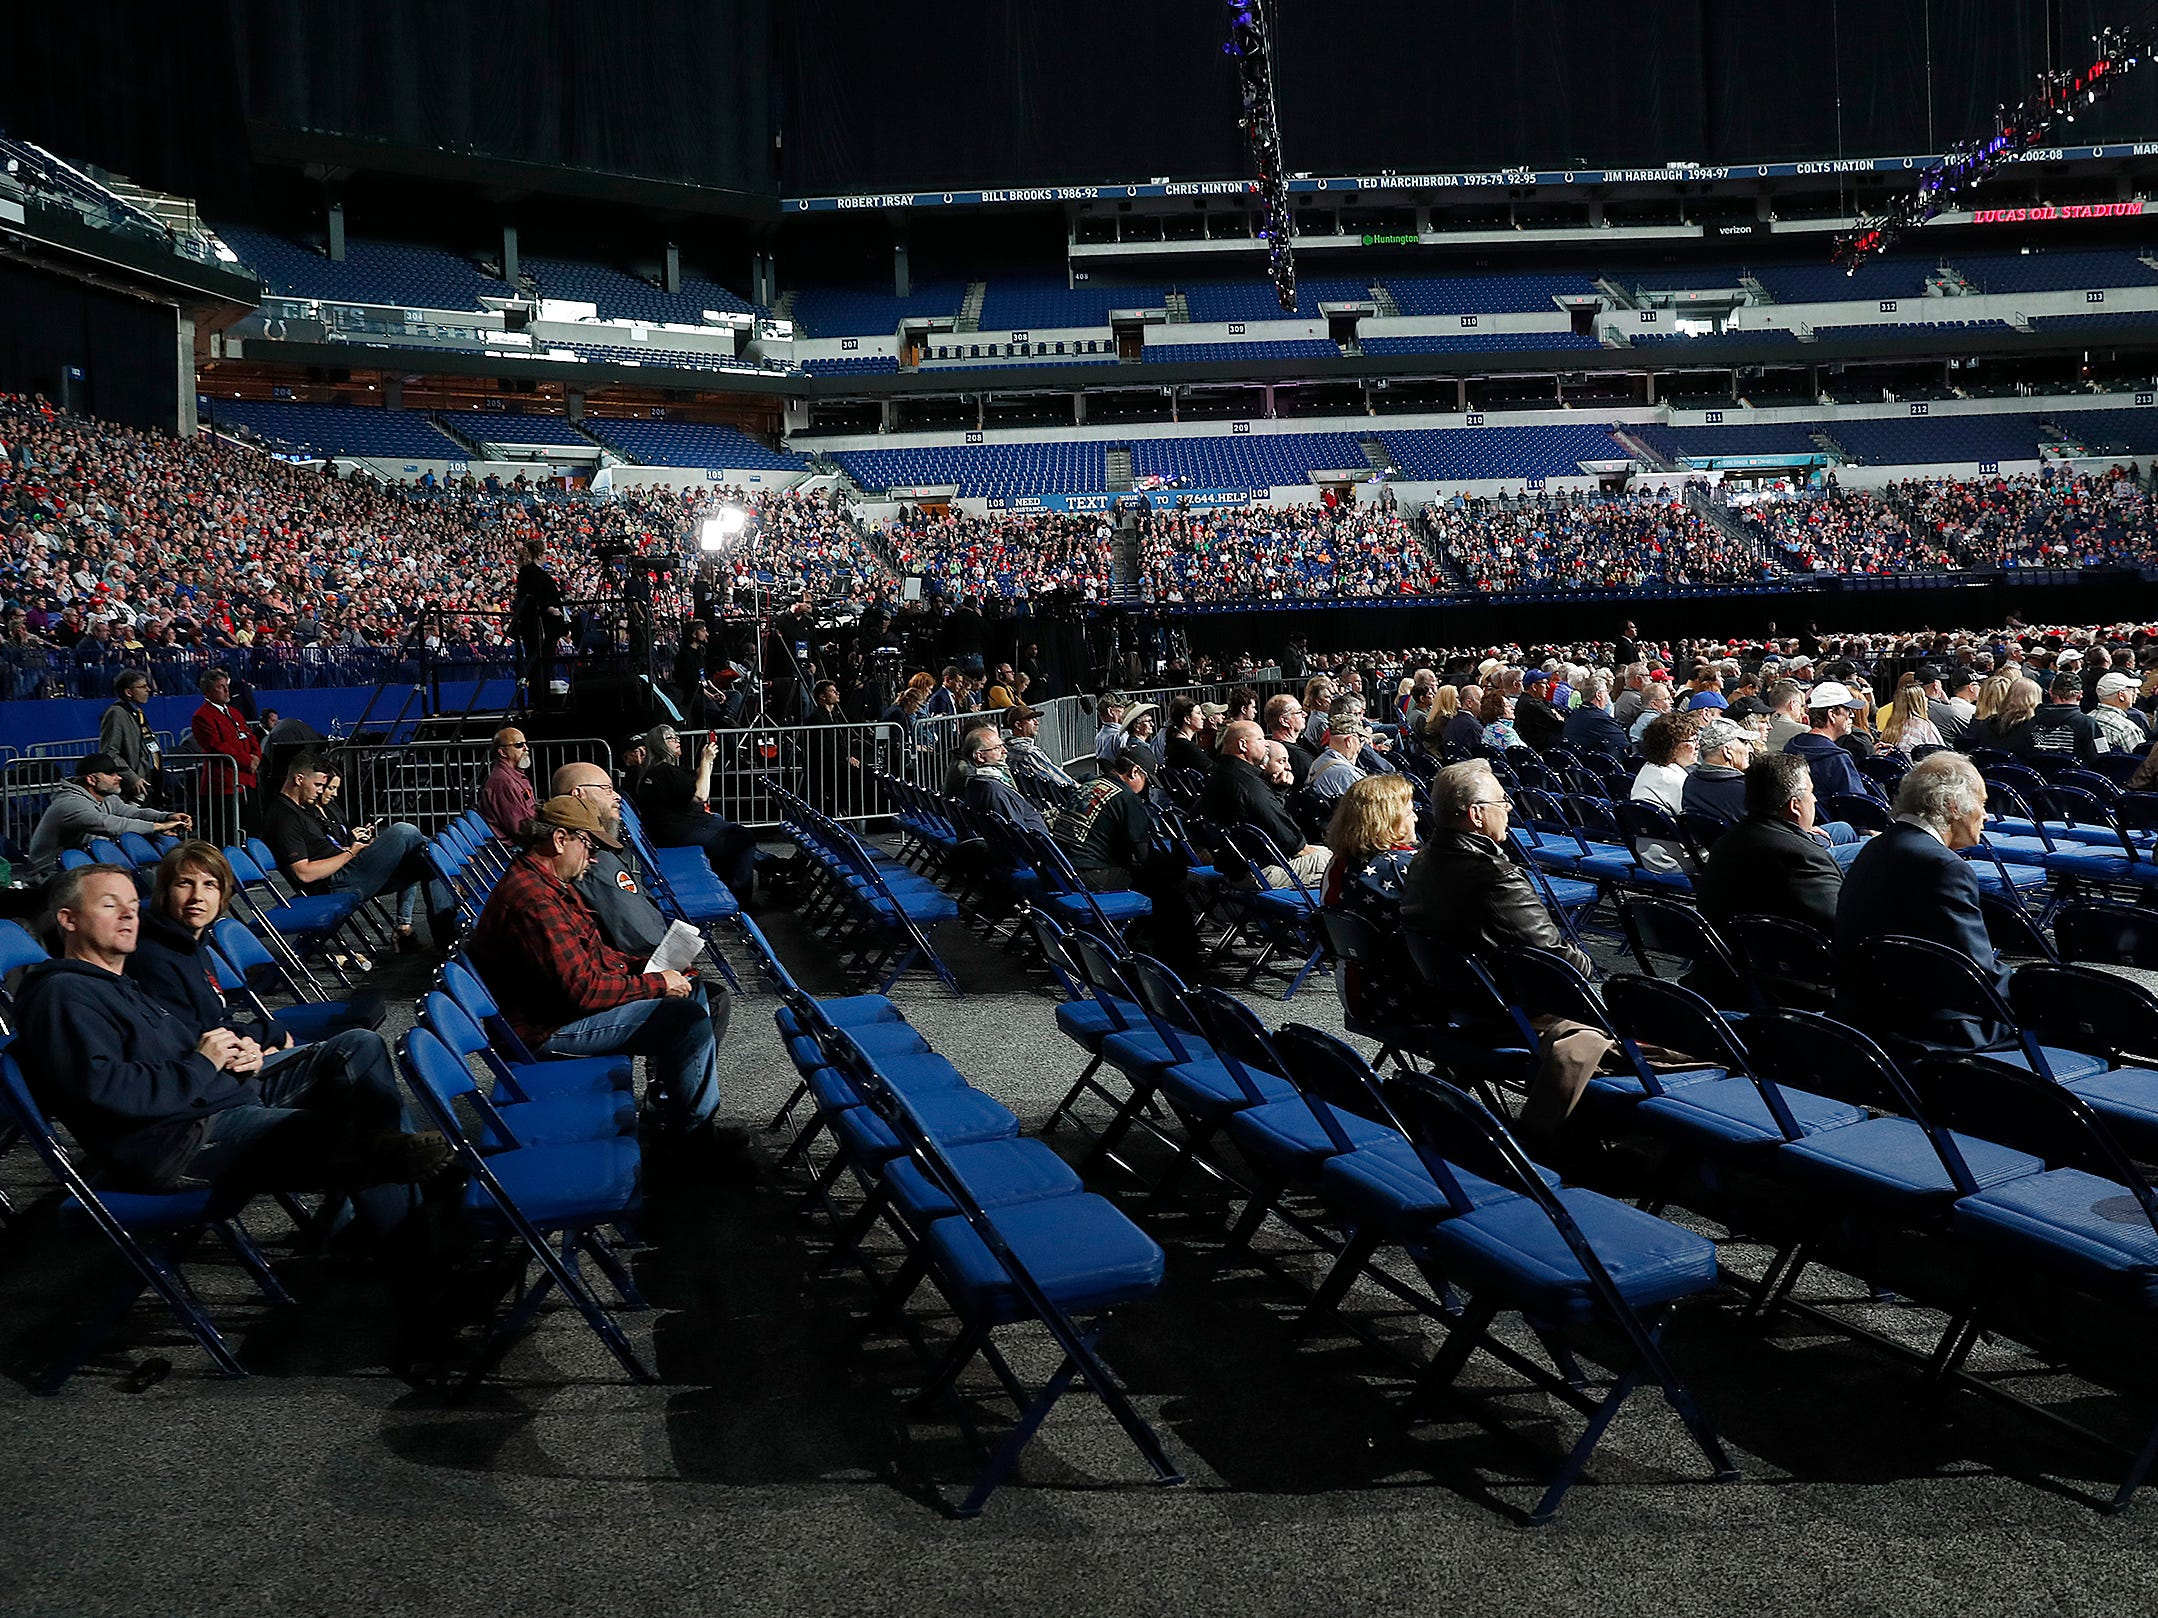 Plenty of good seats were still available on the floor of Lucas Oil Stadium as President Donald Trump speaks to his supporters at the NRA-ILA Leadership Forum at Lucas Oil Stadium on Friday, April 26, 2019.